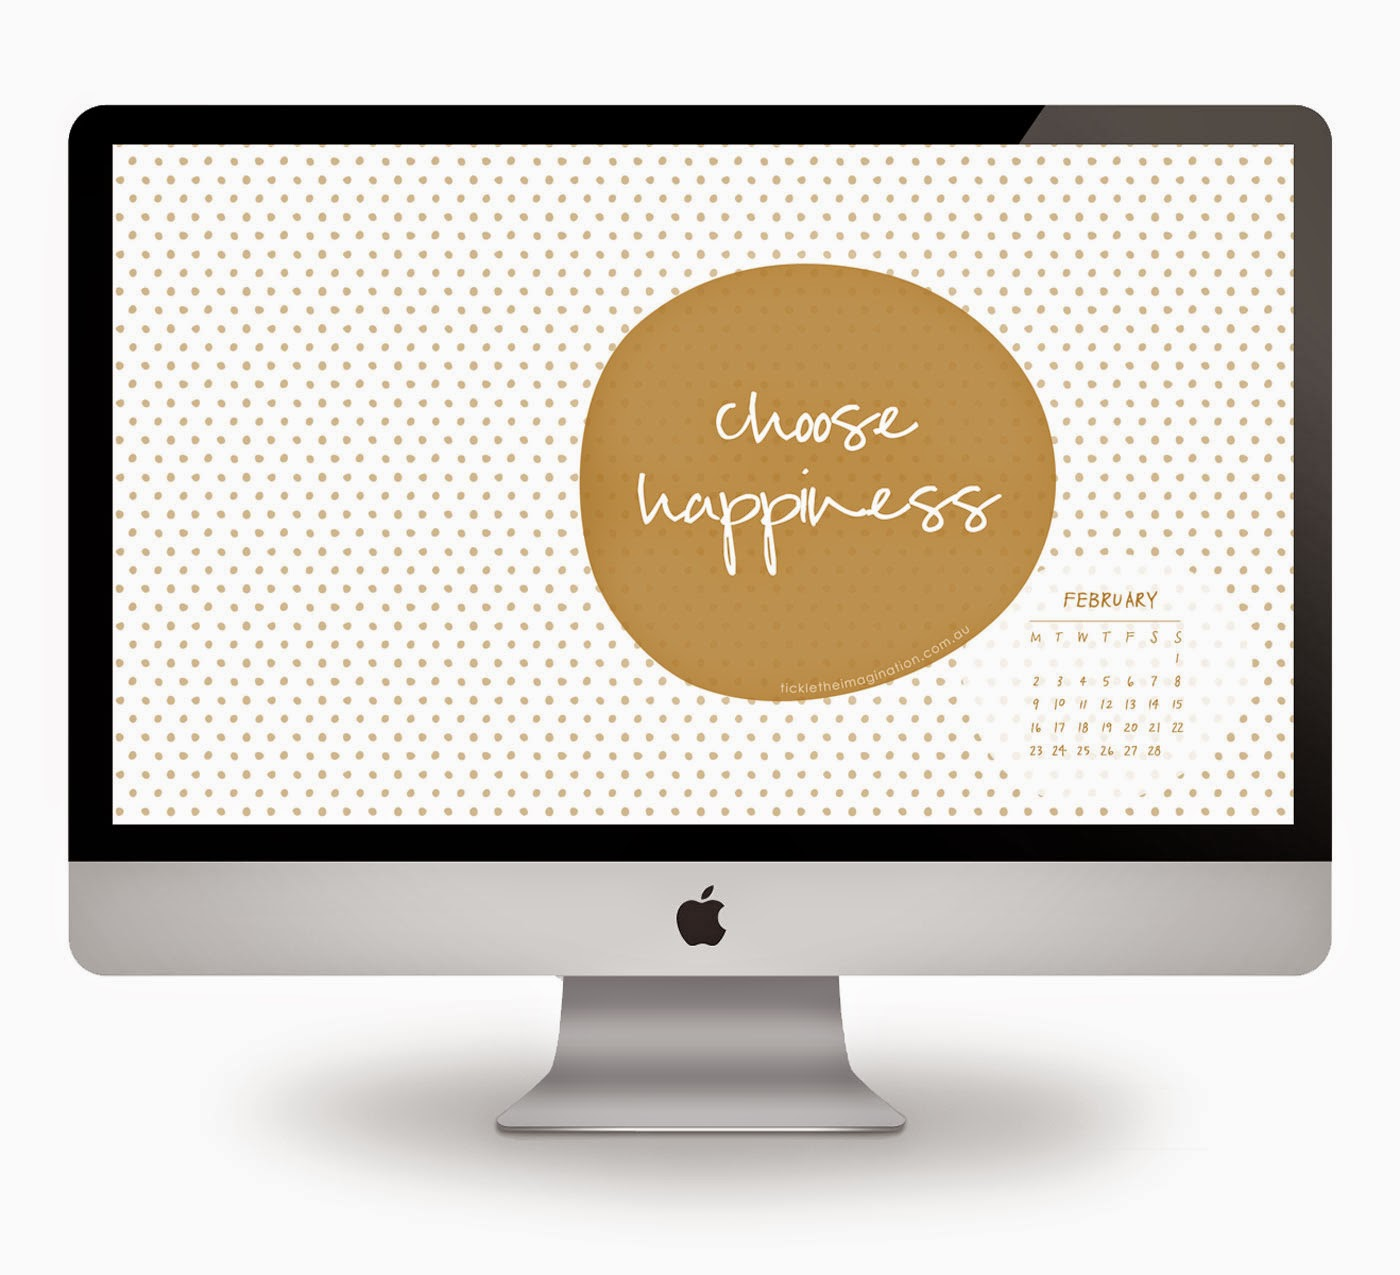 http://www.tickletheimagination.com.au/images/2015%20desktop%20calendars/february---choose-happiness.jpg